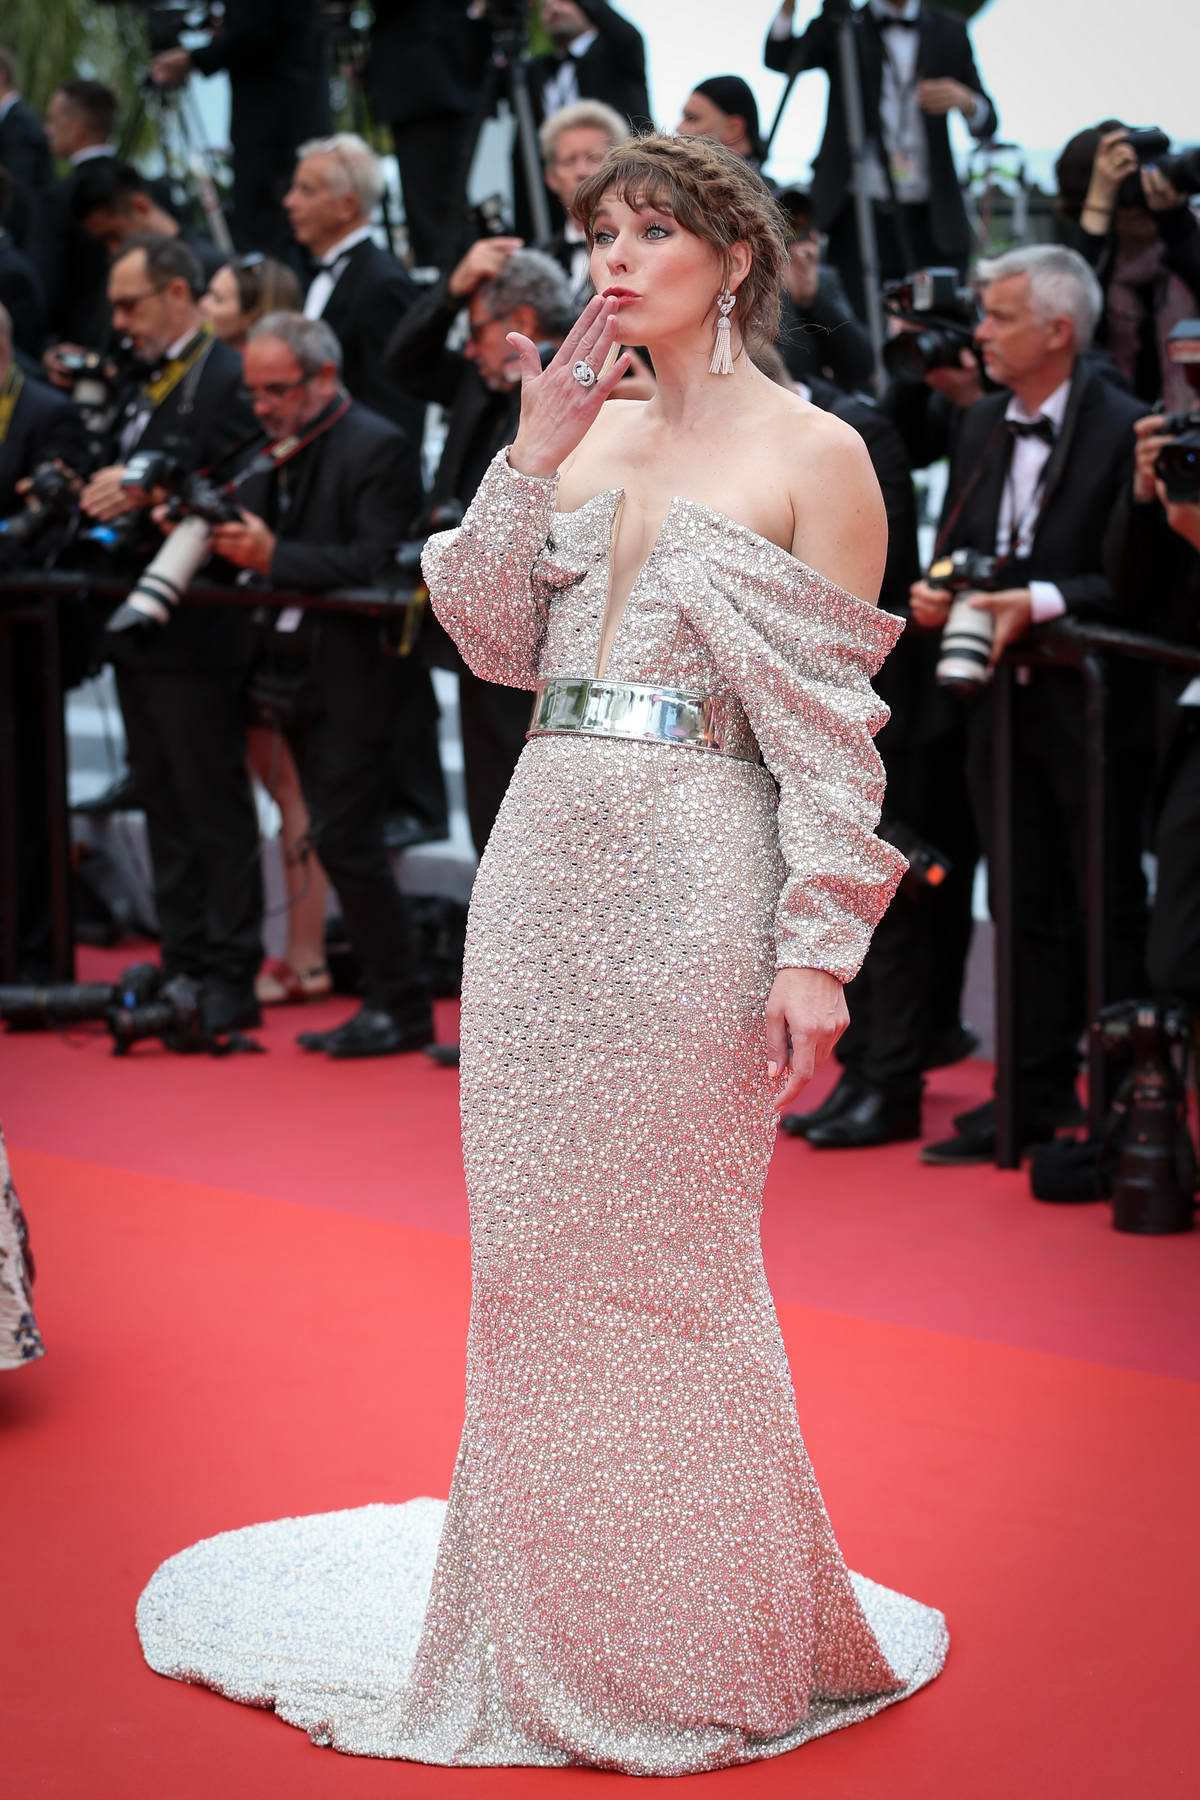 Milla Jovovich attends the screening of 'Sibyl' during the 72nd annual Cannes Film Festival In Cannes, France